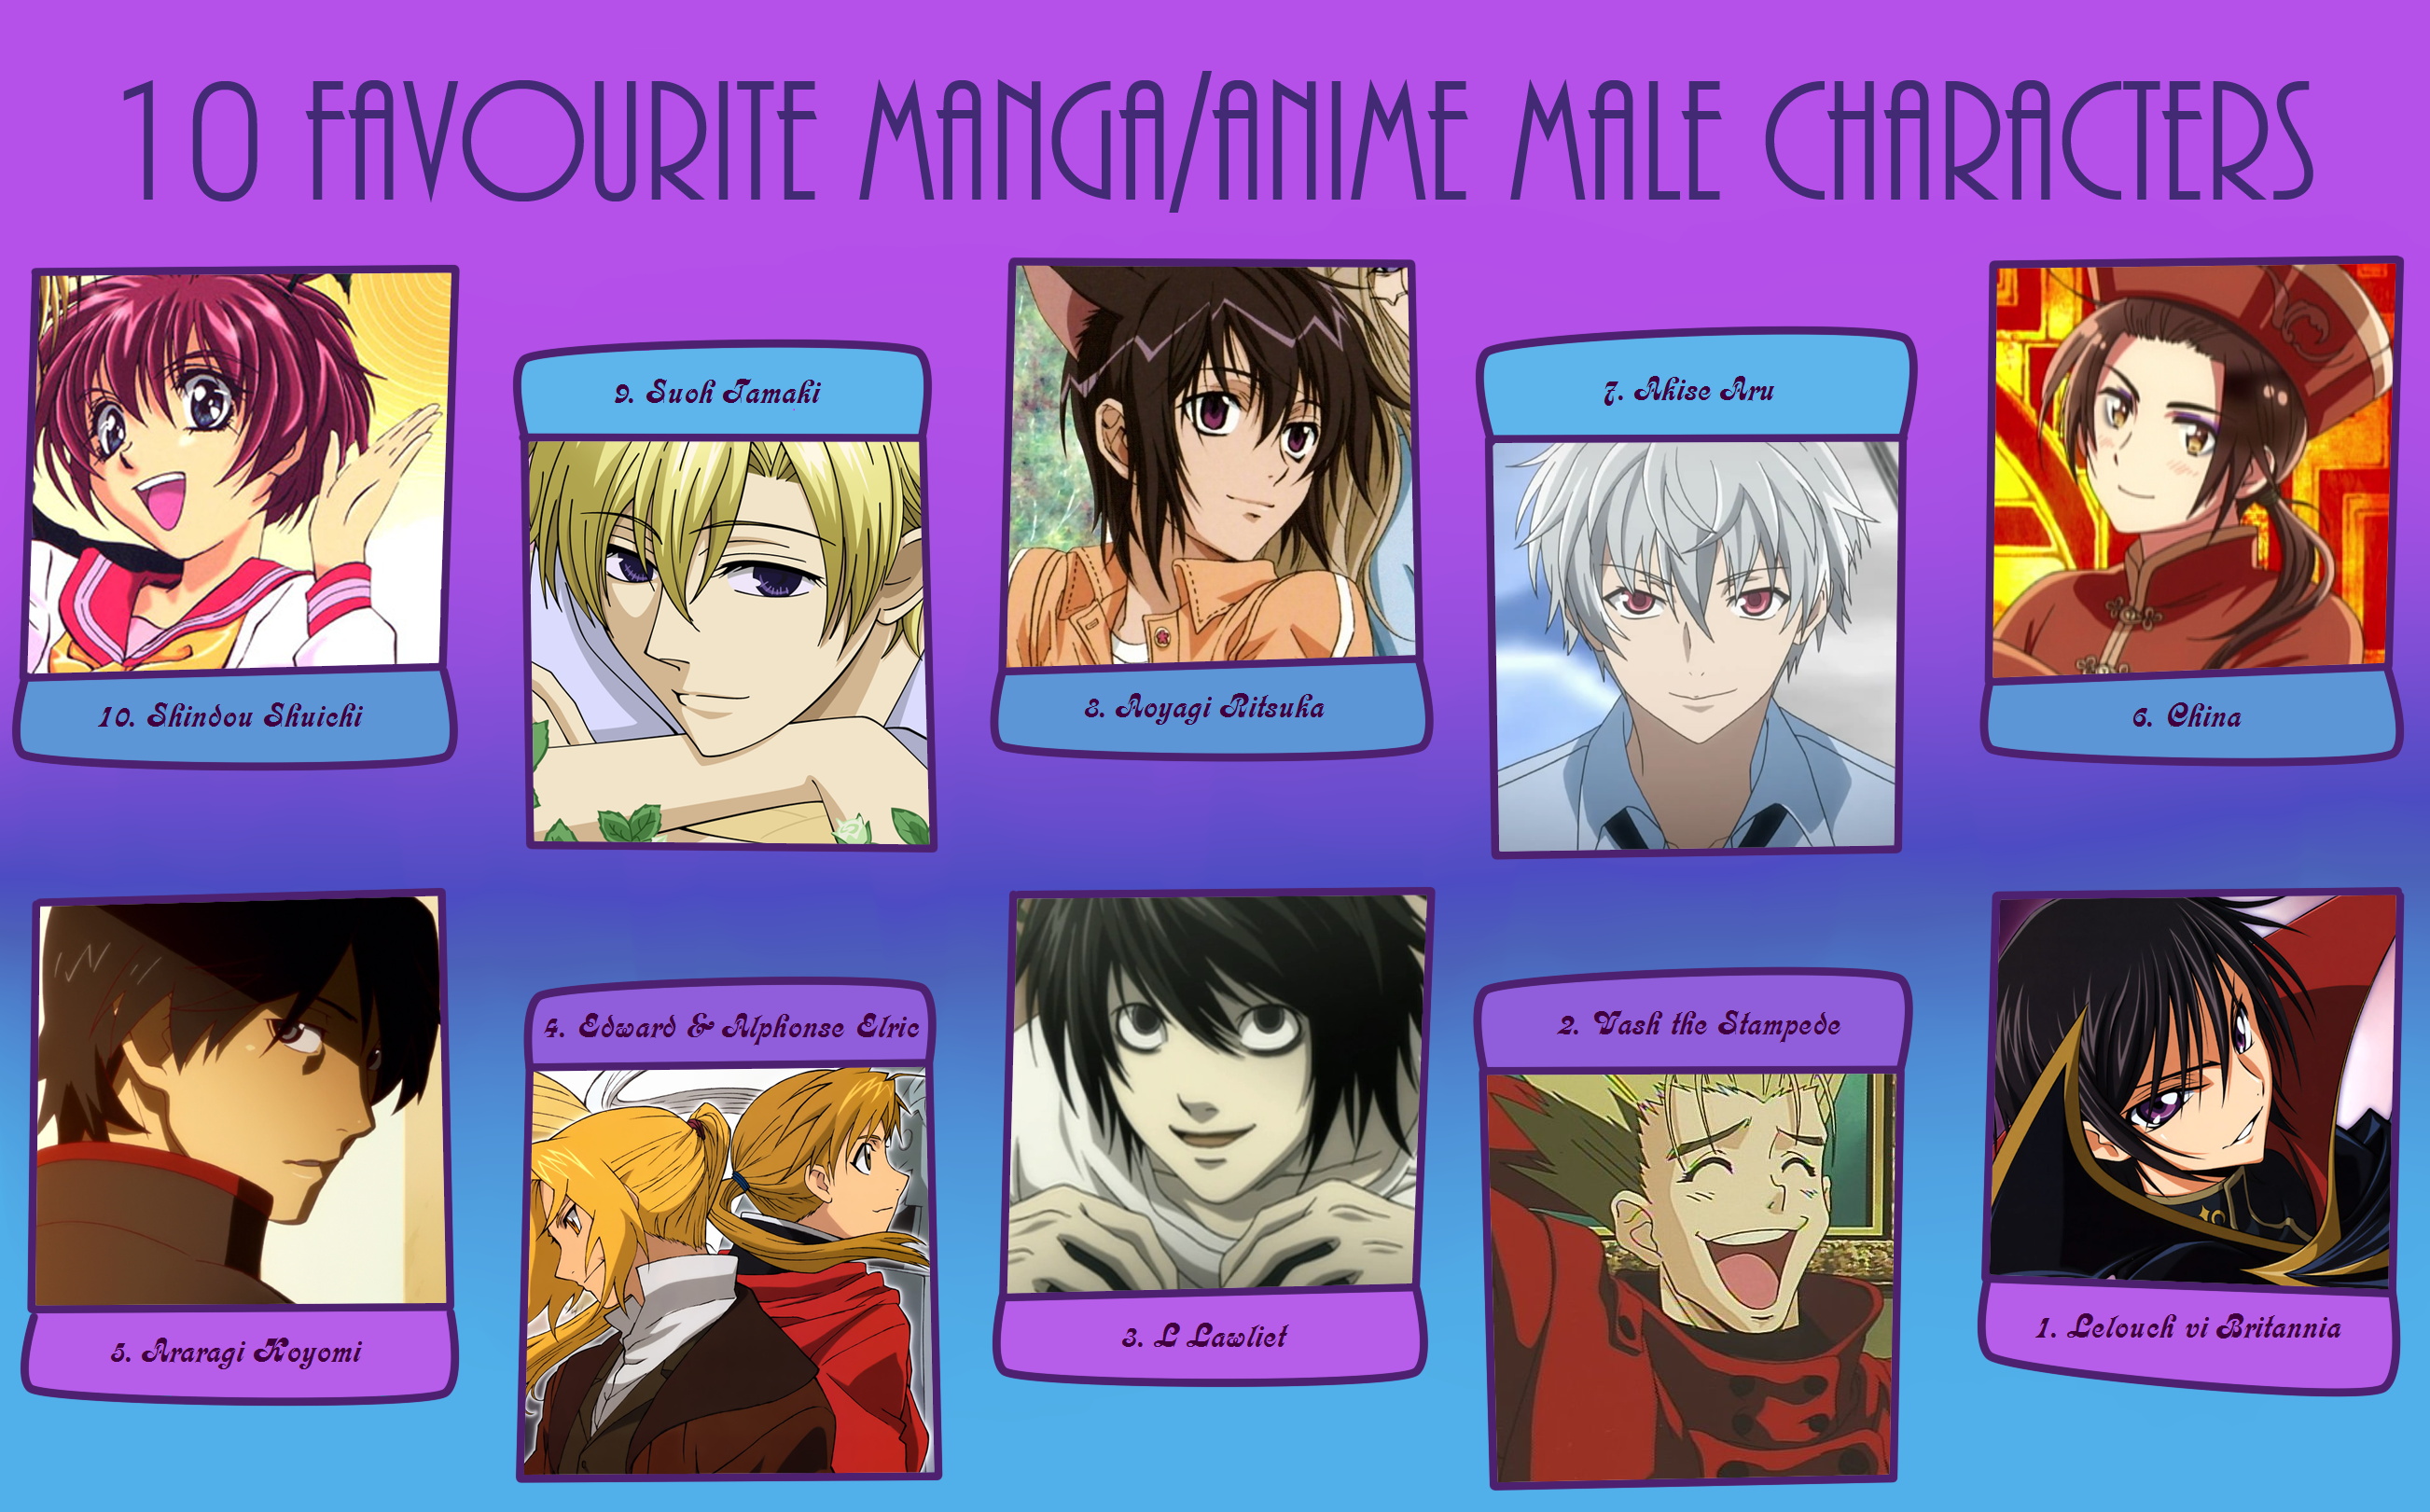 Anime Characters Popular : My top favorite male anime manga characters by